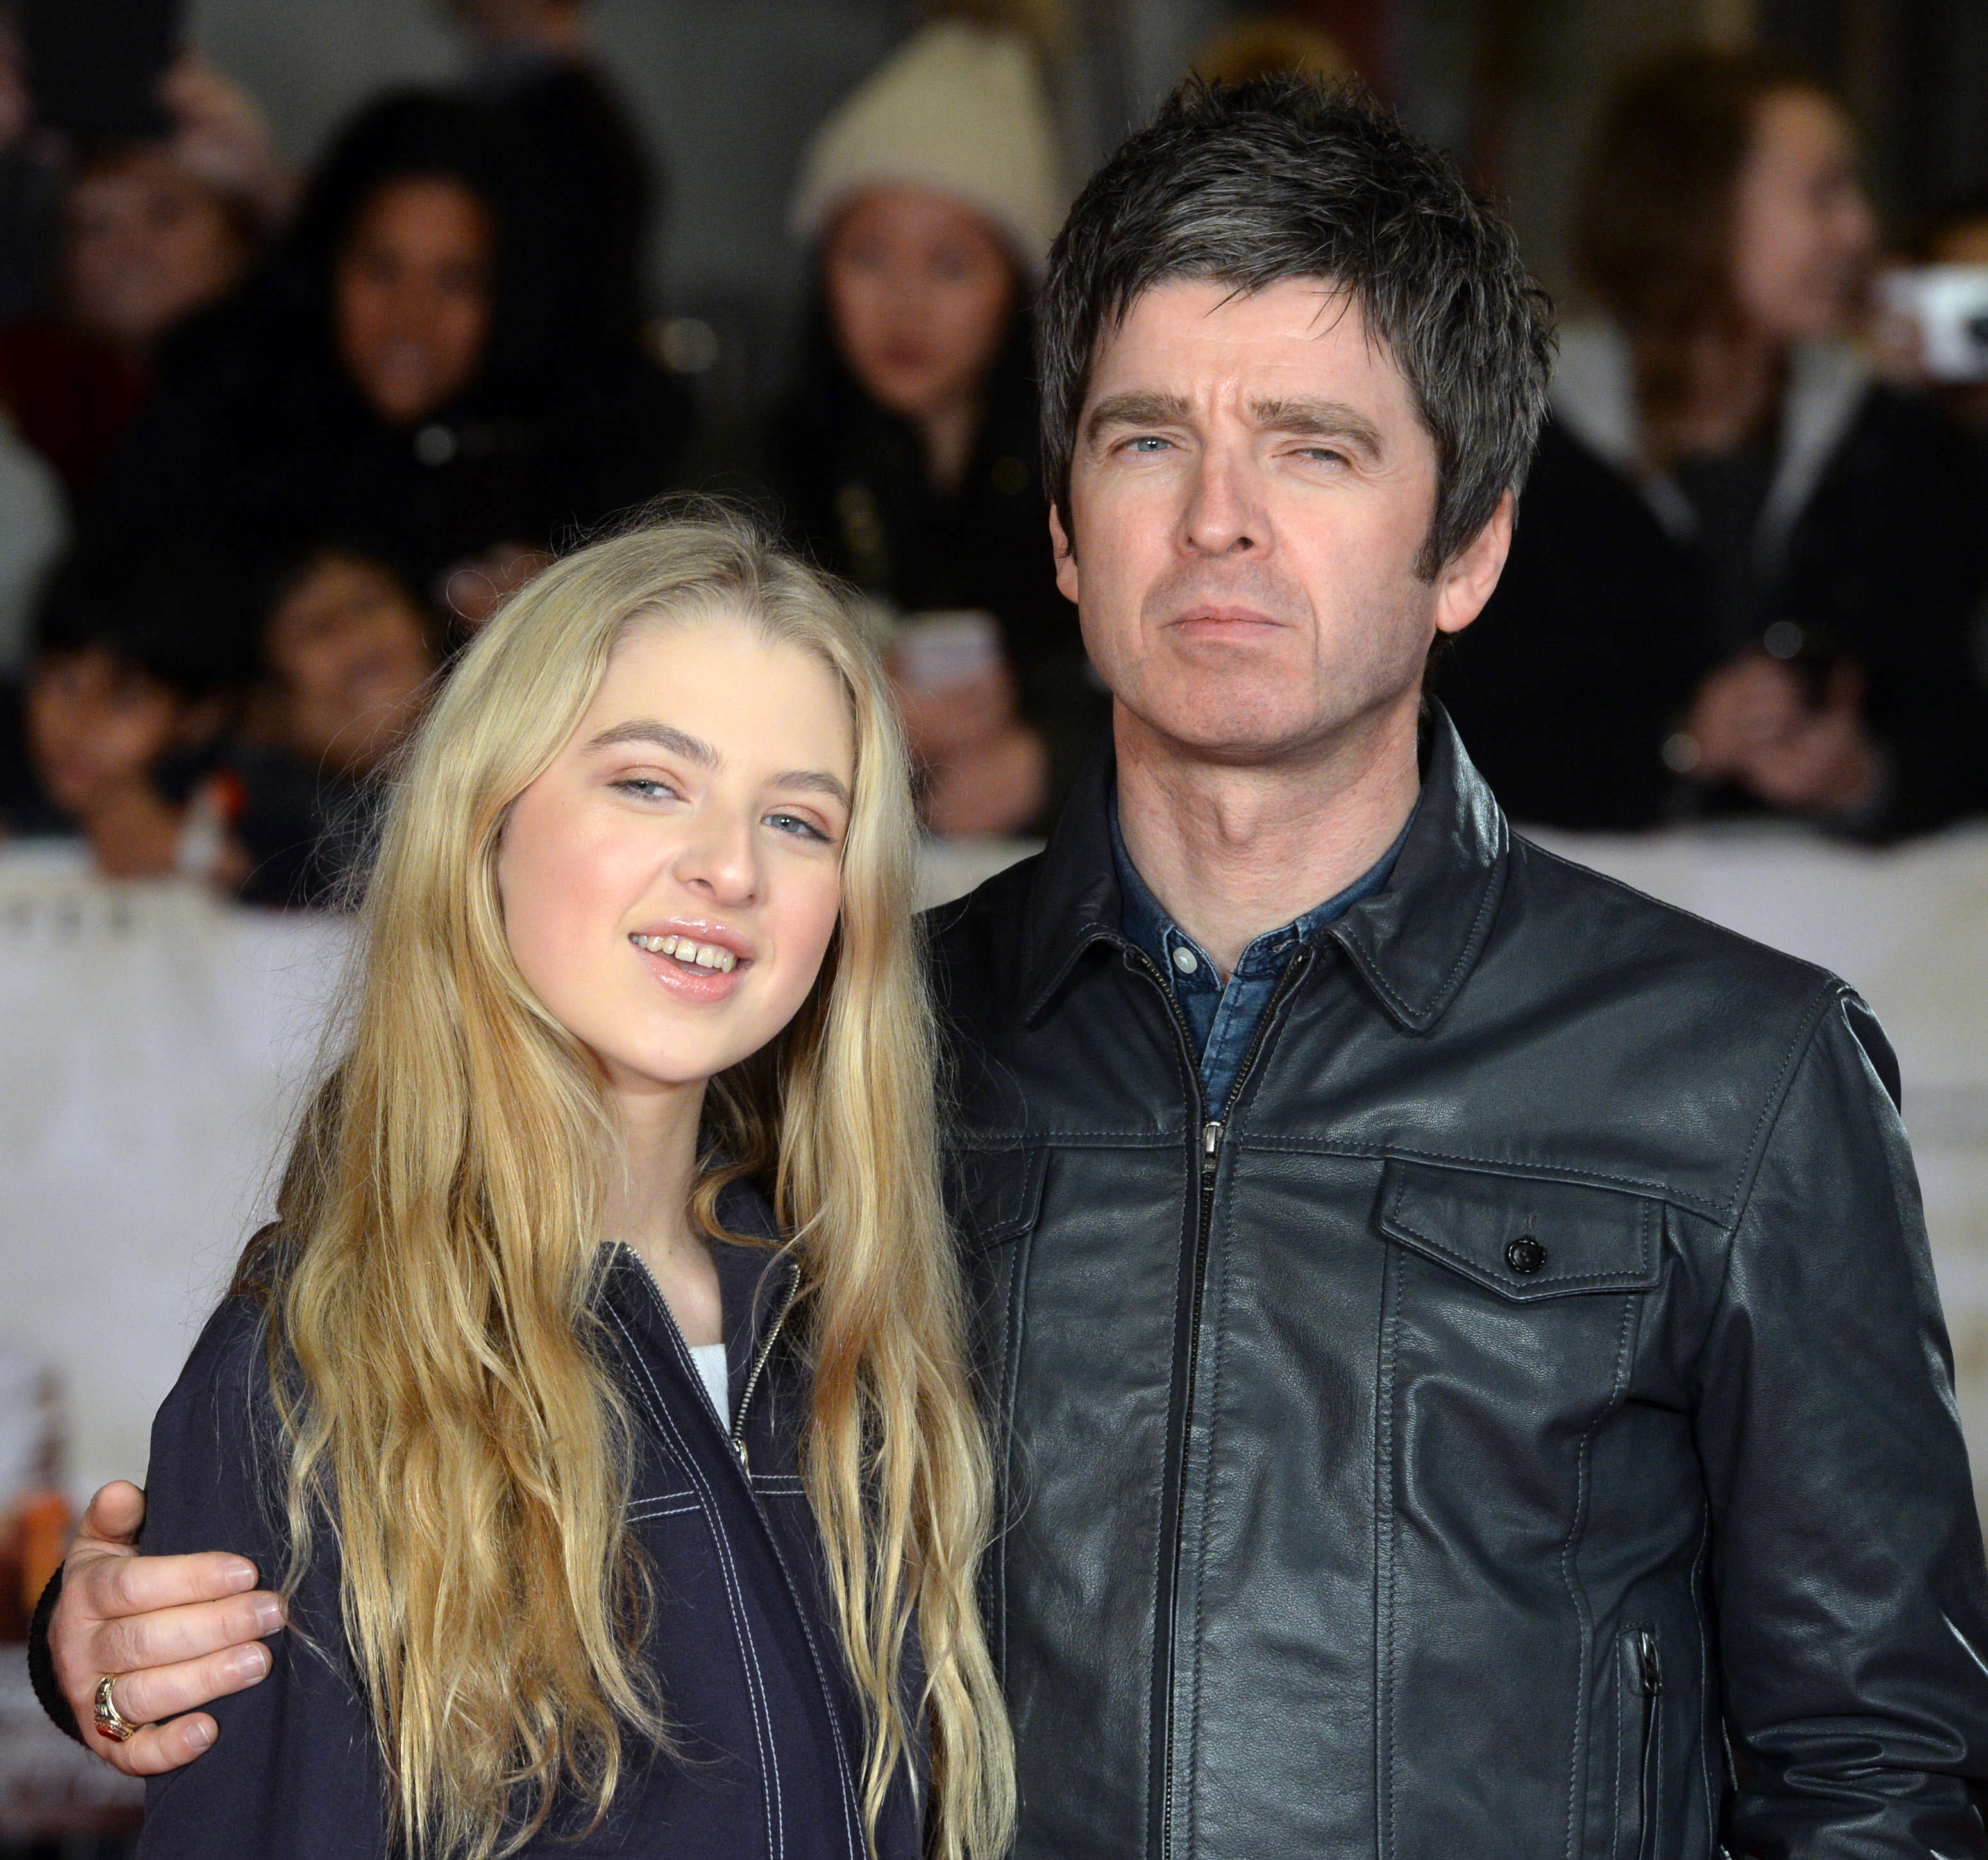 Slide 11 of 18: Noel Gallagher and Anaïs Gallagher attend the premiere of 'Burnt' at Vue, Leicester Square, U.K. on Oct. 28, 2015.